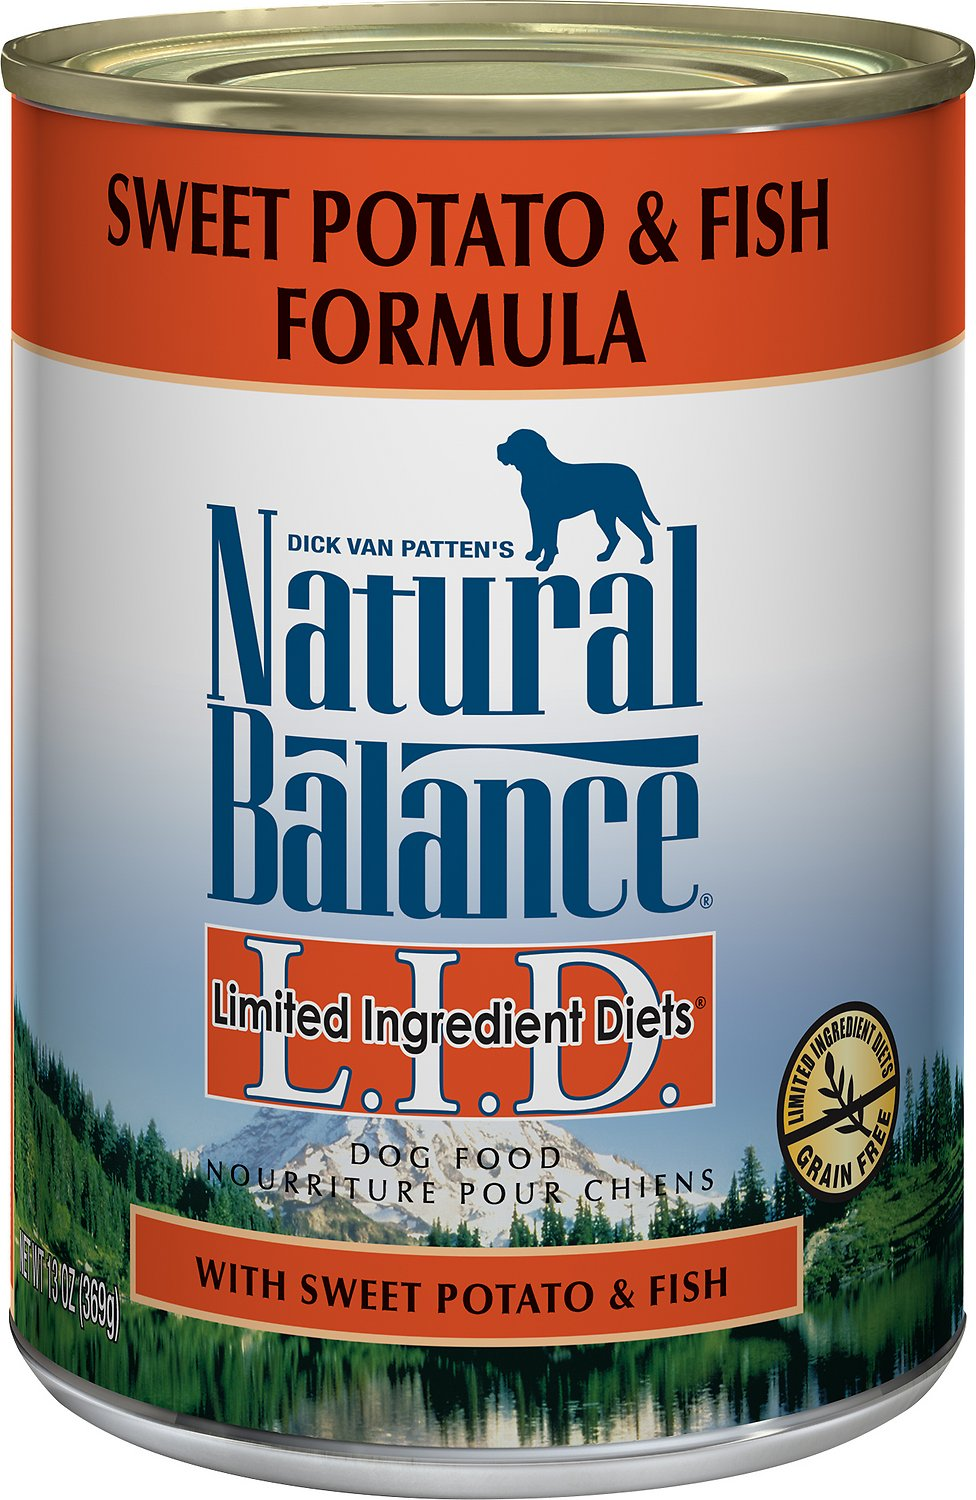 Natural Balance L.I.D. Limited Ingredient Diets Sweet Potato & Fish Formula Grain-Free Canned Dog Food Image